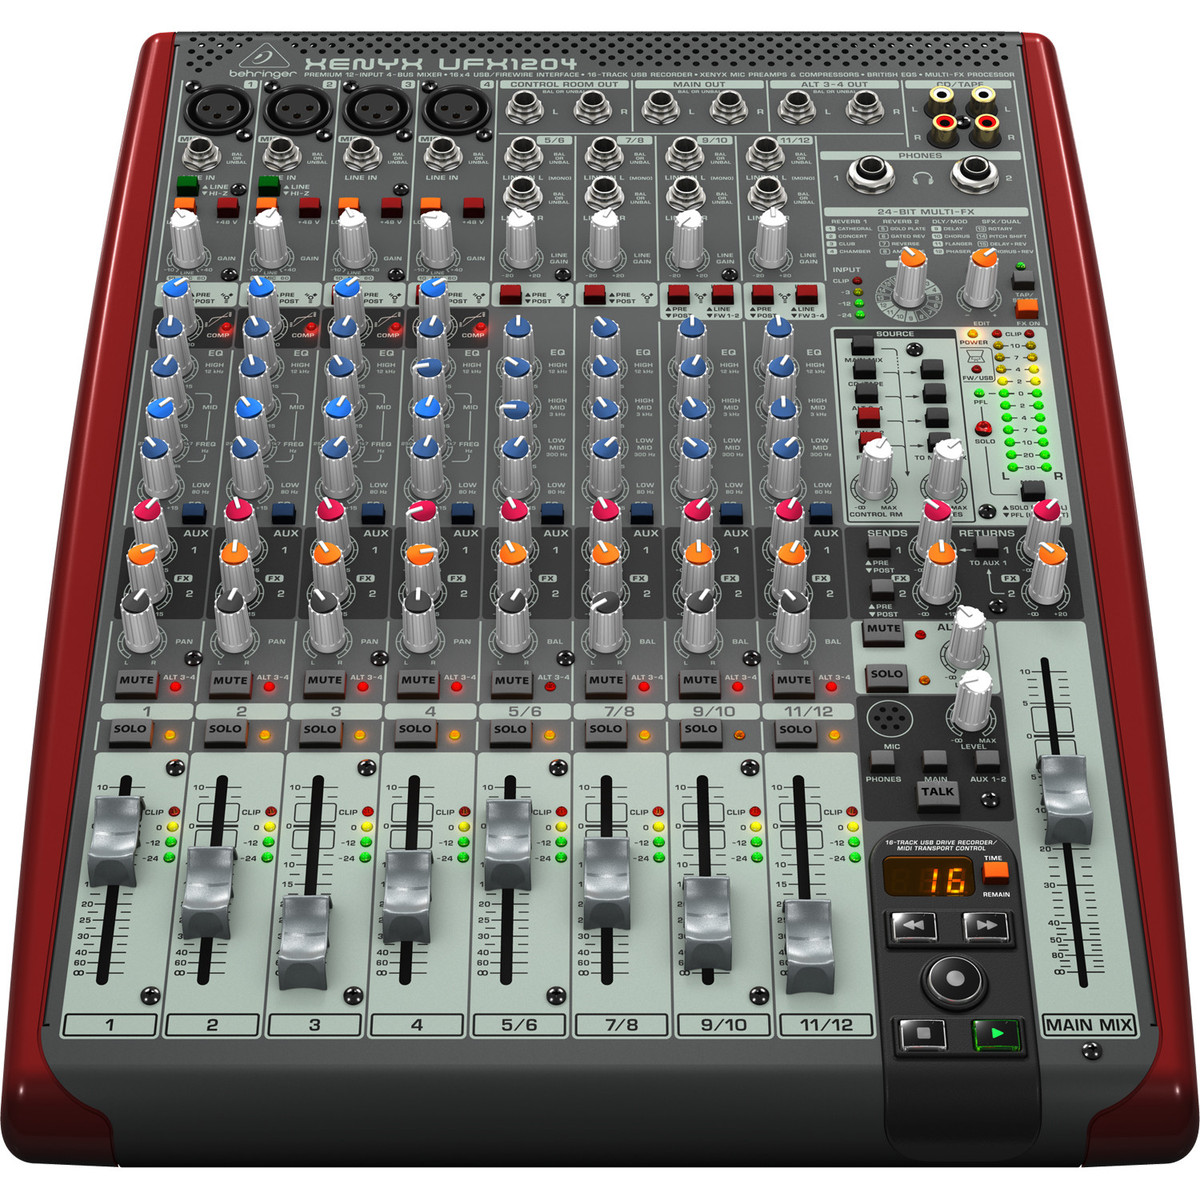 Behringer xenyx ufx1204 table de mixage petit format gear4music - Table de mixage behringer ...